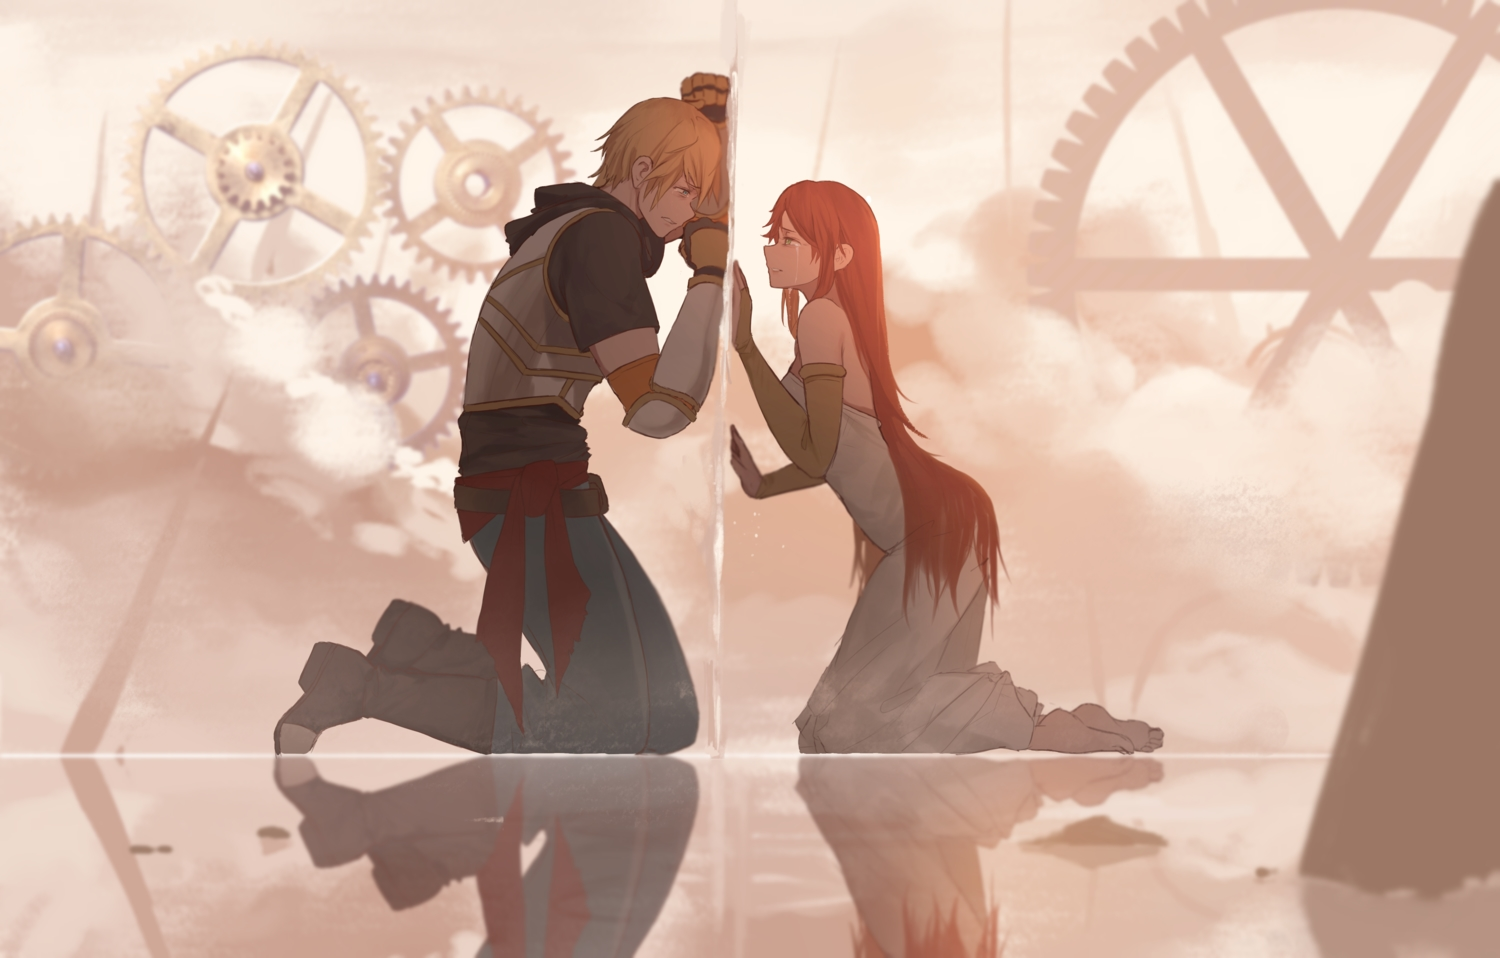 armor barefoot blonde_hair boots clouds crying dishwasher1910 elbow_gloves gloves green_eyes hoodie industrial jaune_arc long_hair male pyrrha_nikos red_eyes reflection rwby short_hair tears